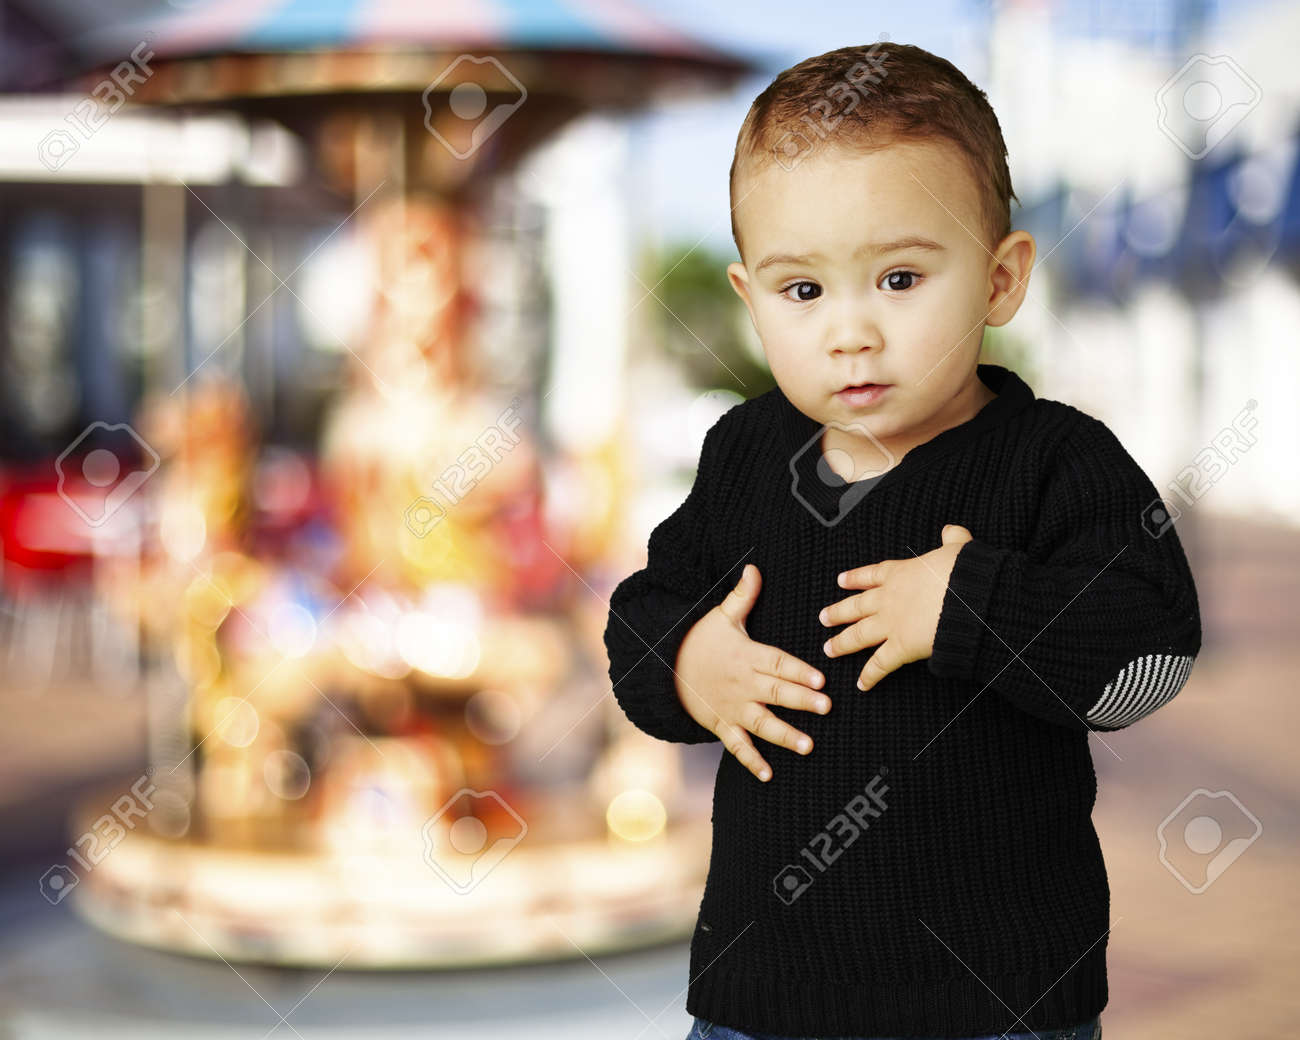 adorable boy touching his stomach against a carousel background Stock Photo - 14438812